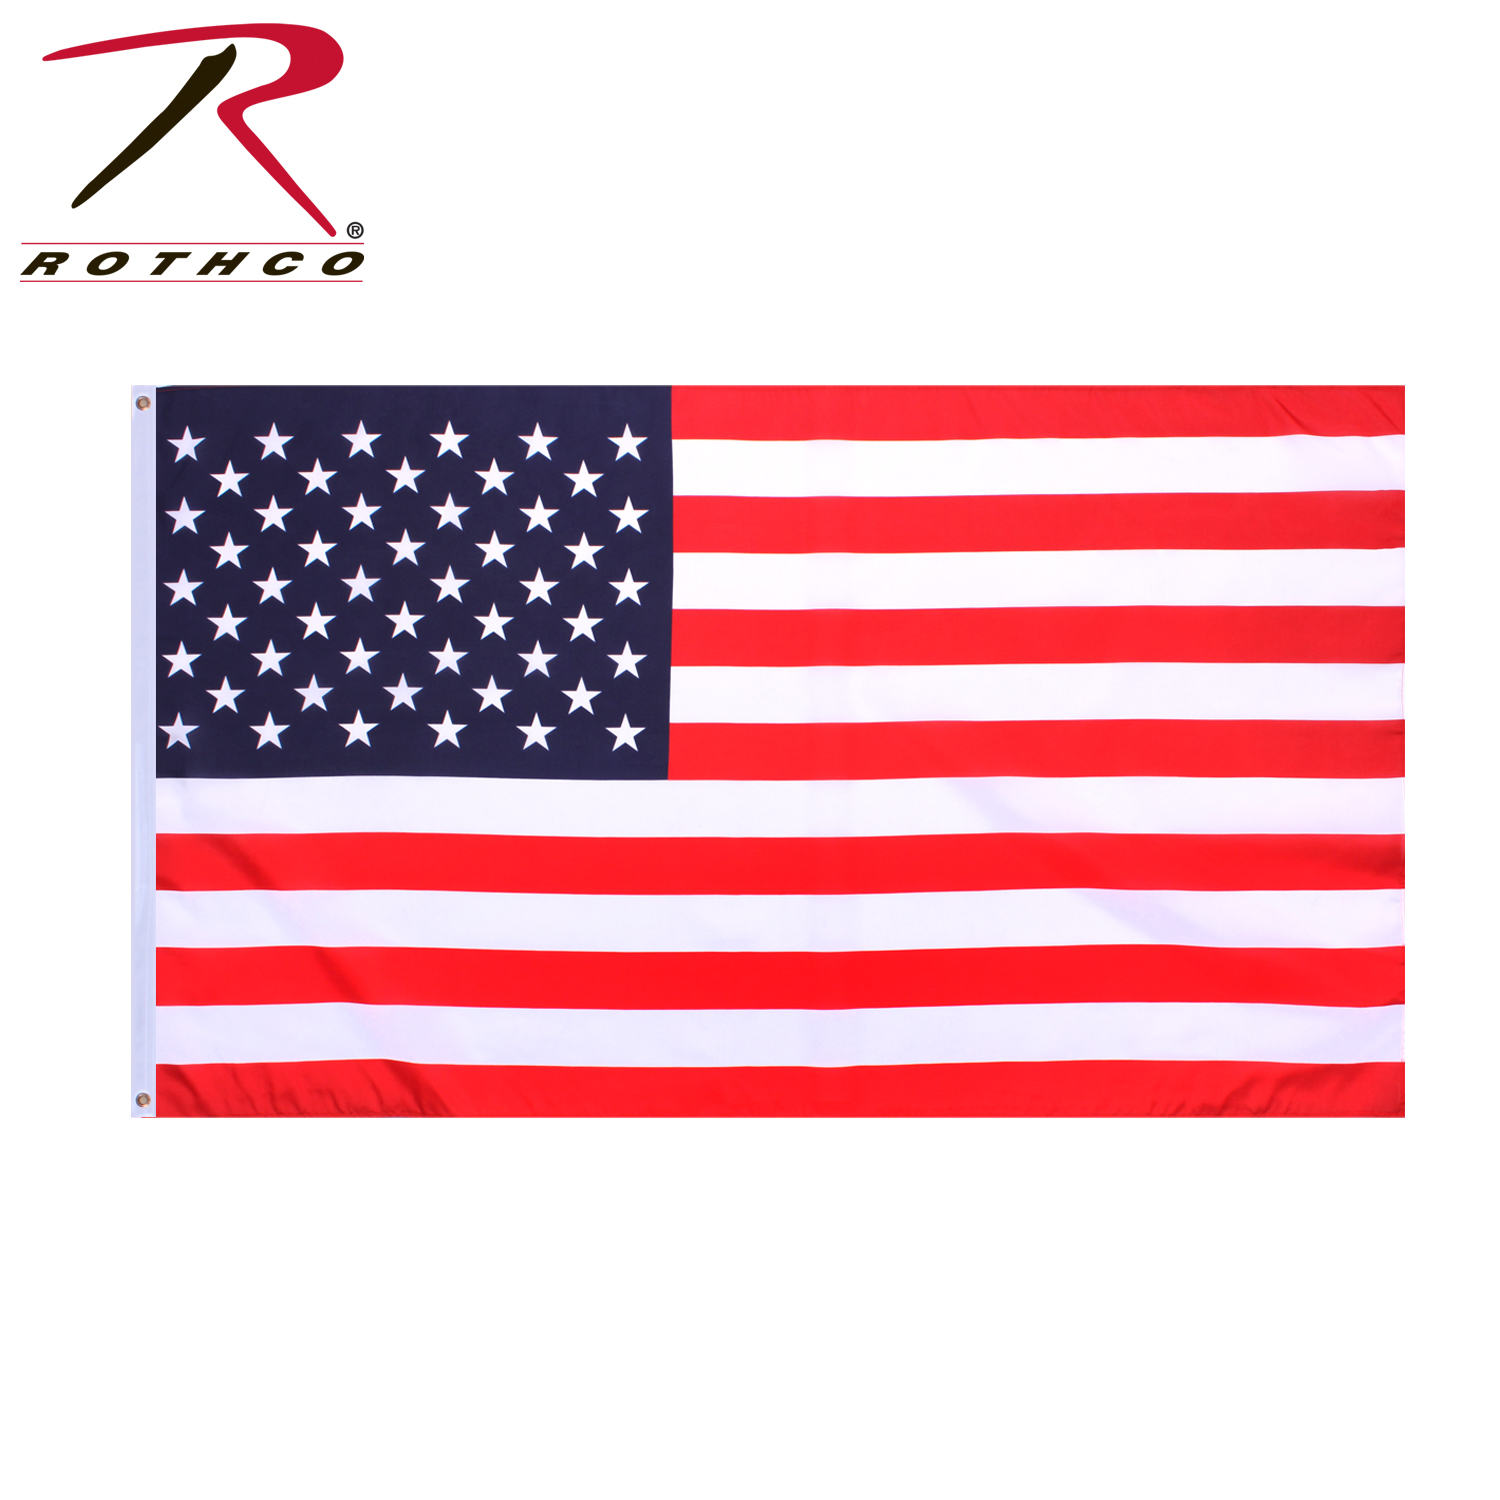 U.S. Flag 3' x 5' with grommets